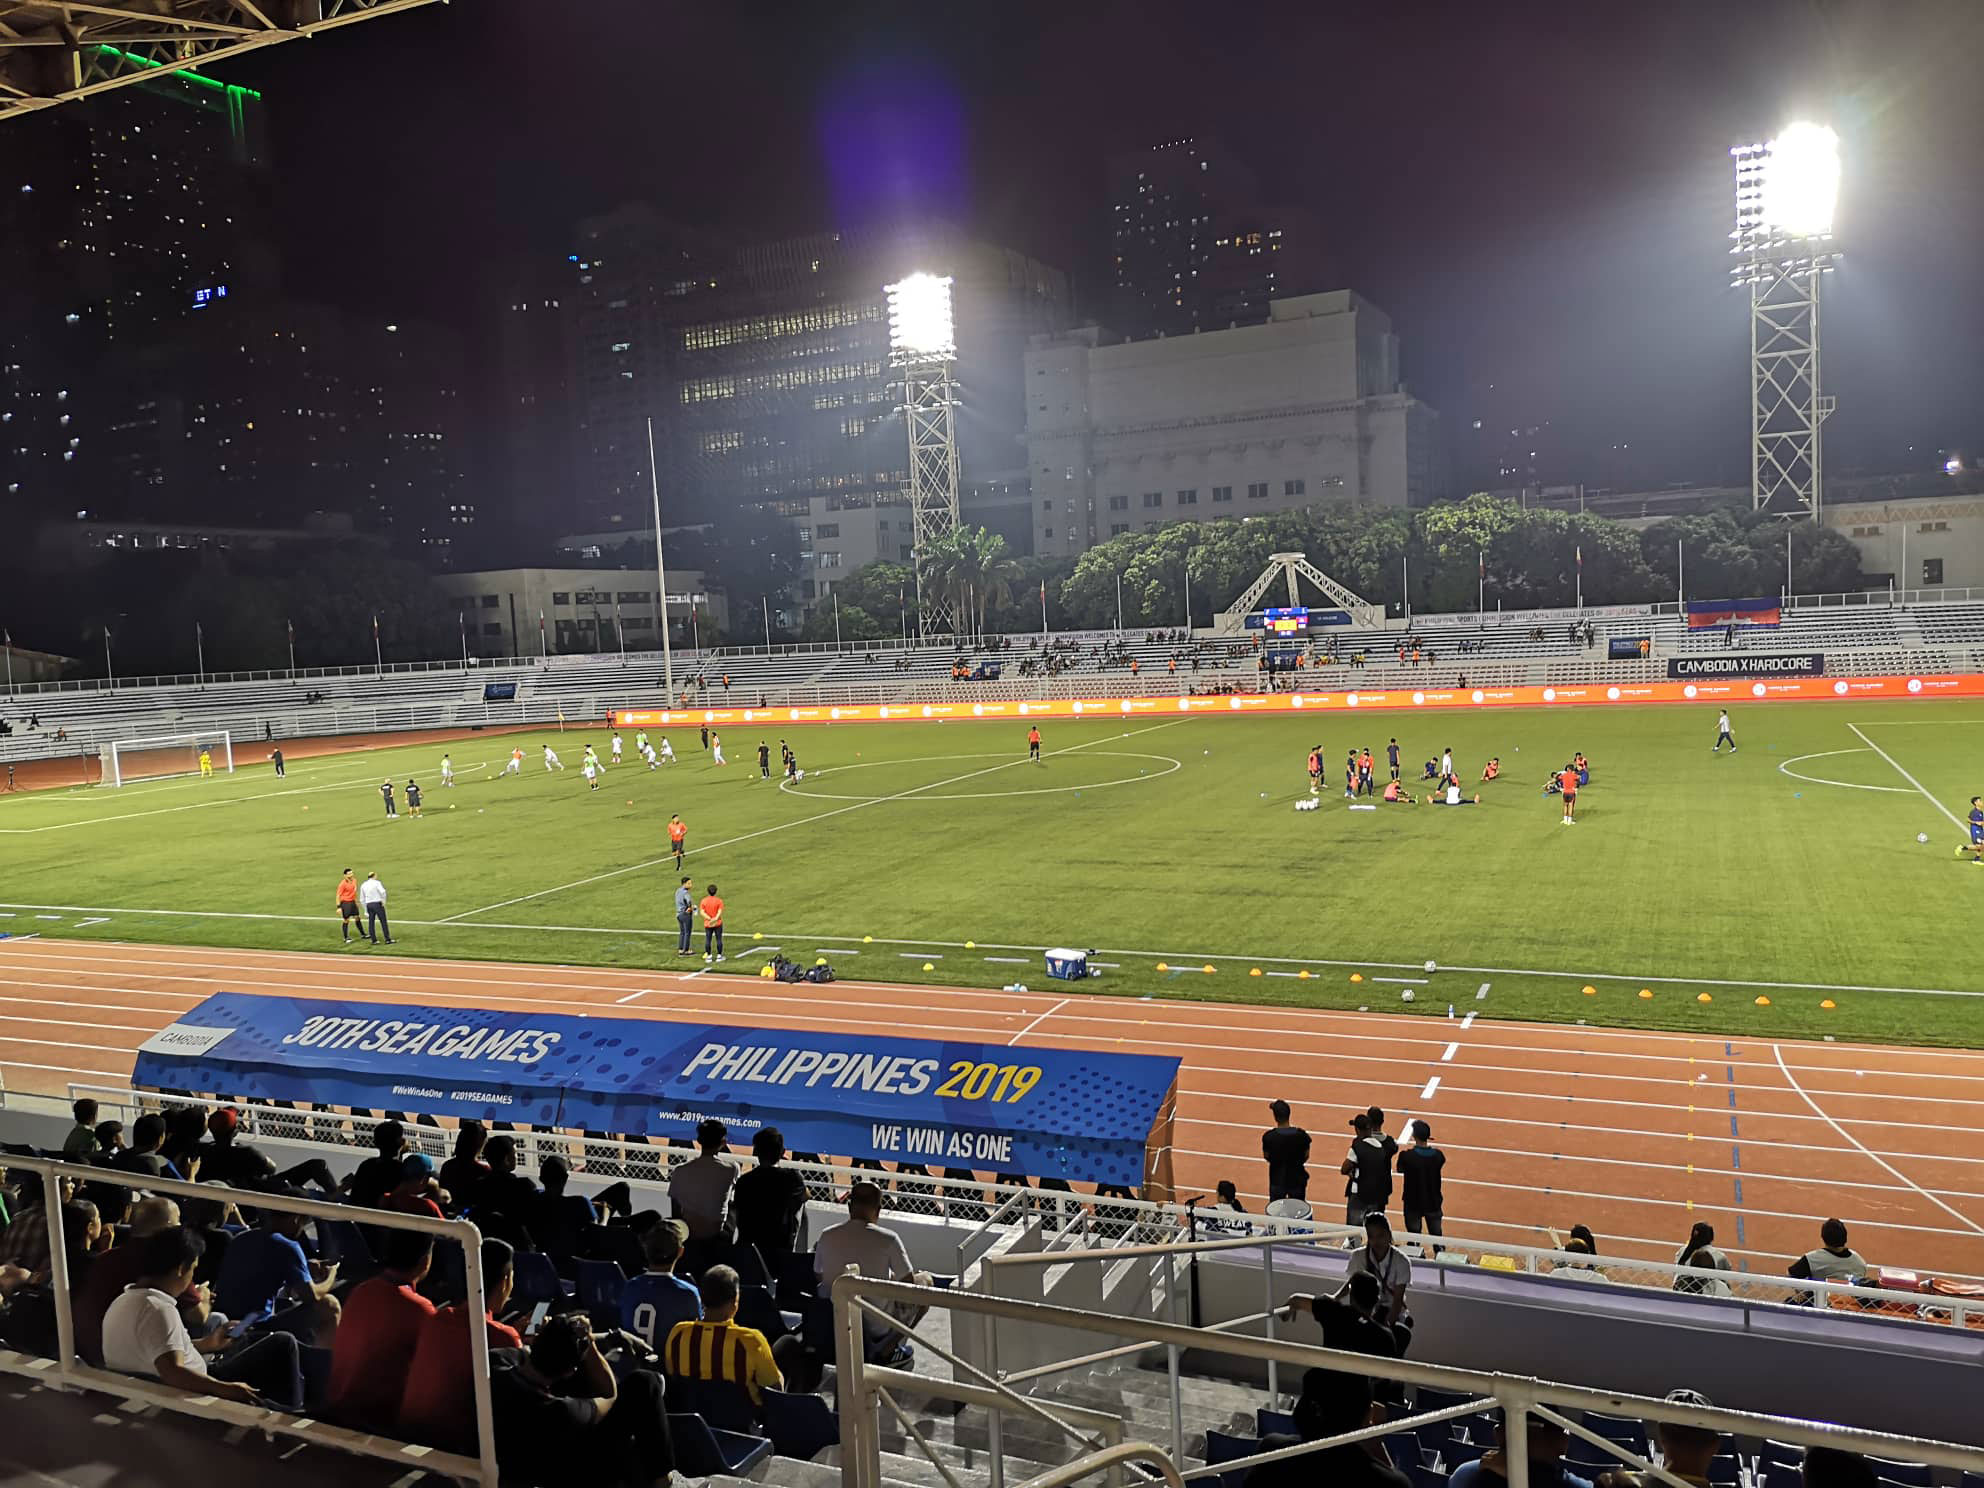 2019-sea-games-football-tribune RMS scoreboard, press room, even CR not yet ready during start of SEA Games Football 2019 SEA Games Football News  - philippine sports news